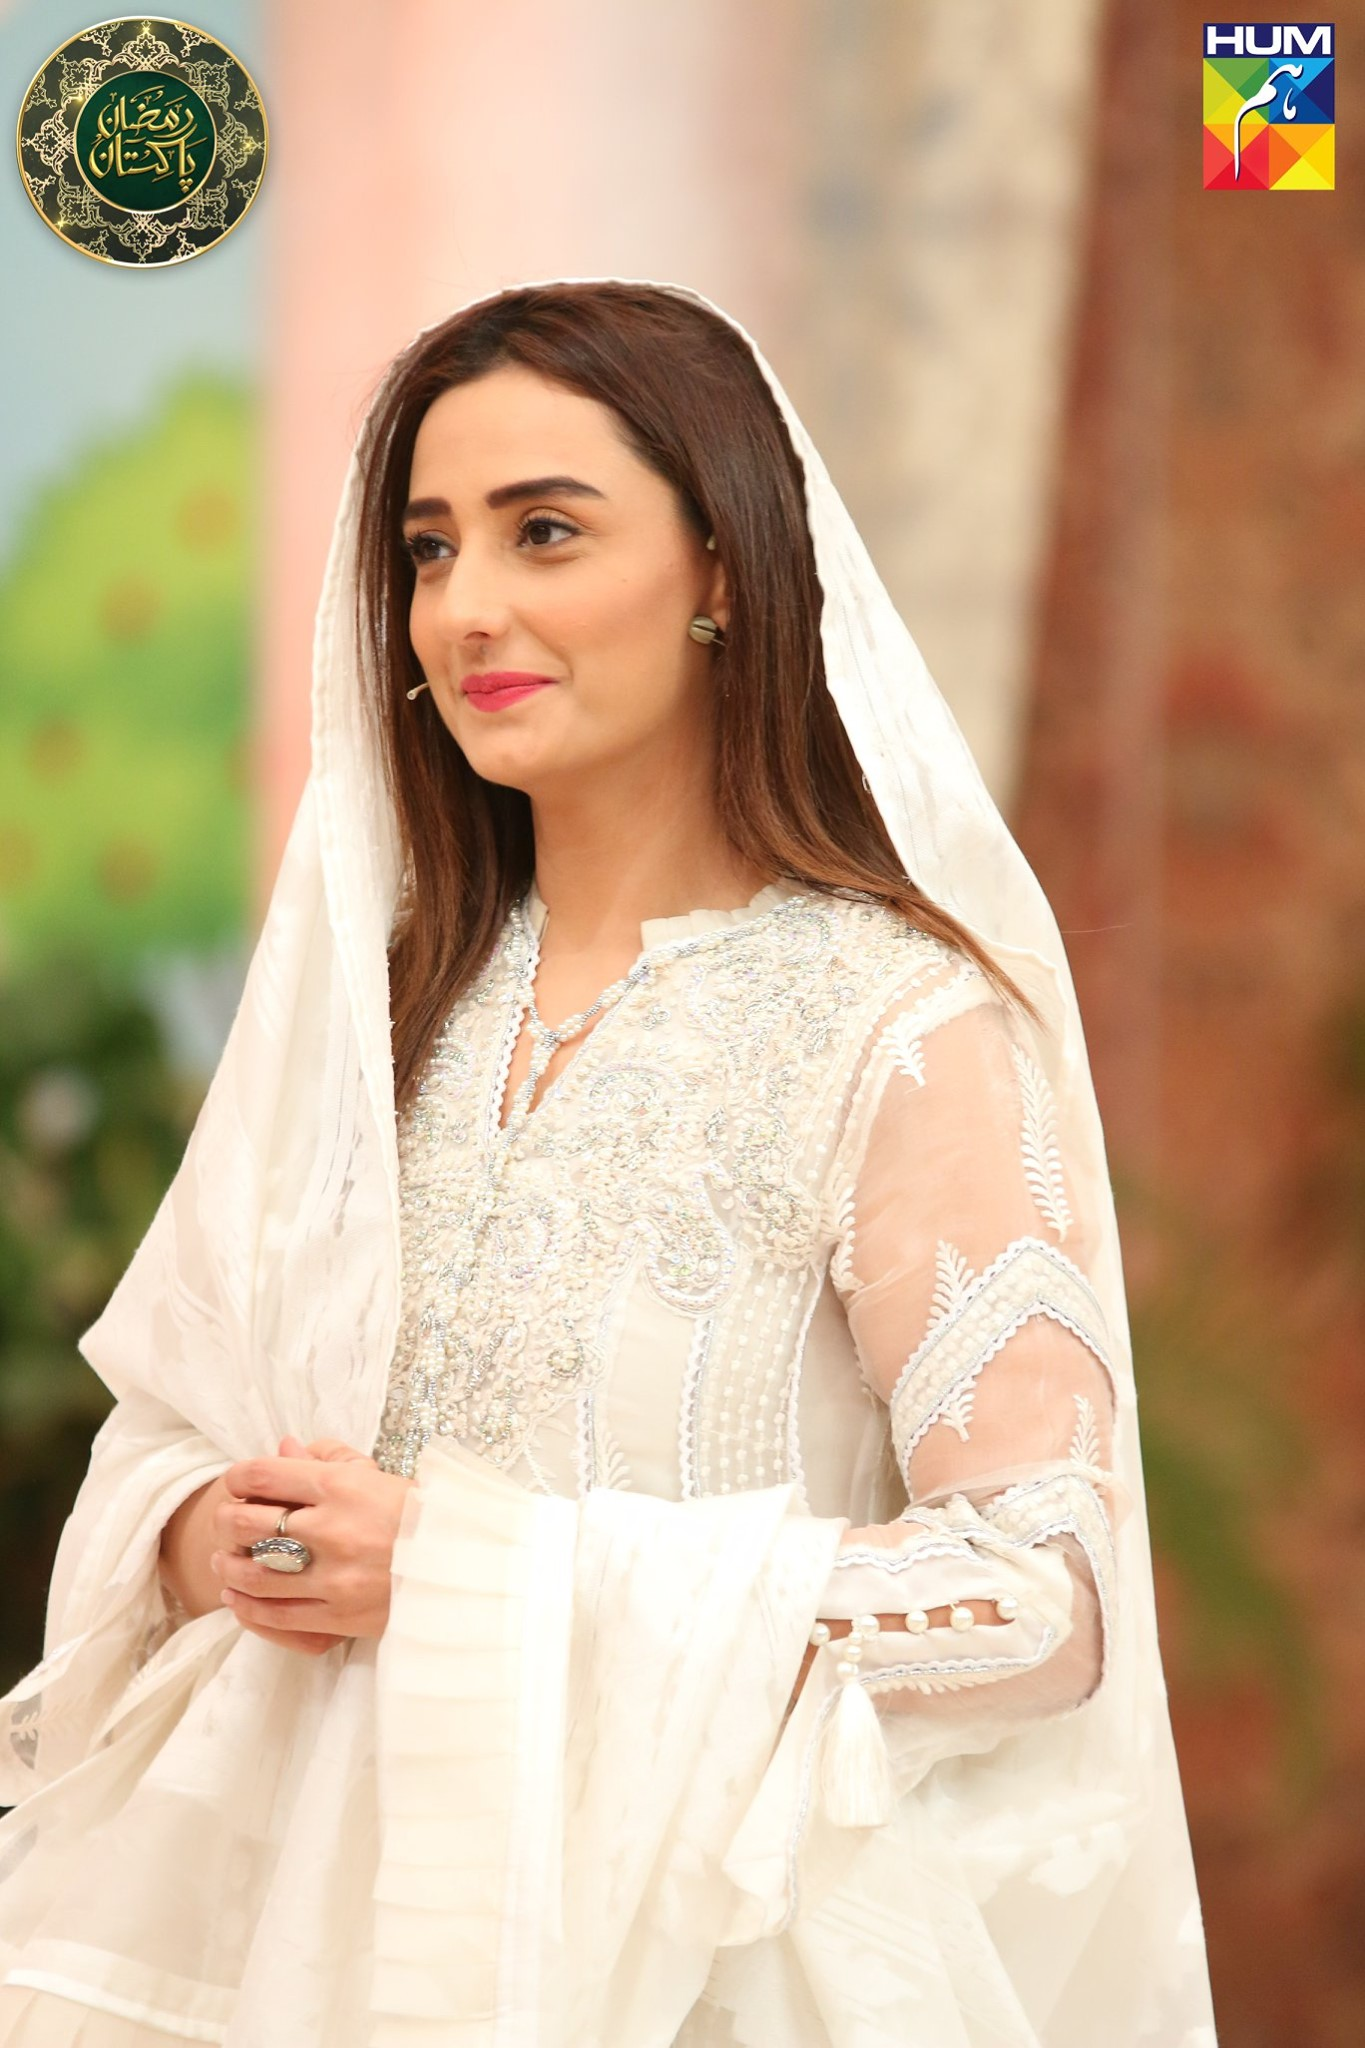 Moomal Sheikh Guest in Ramzan Pakistan Transmission on Humtv